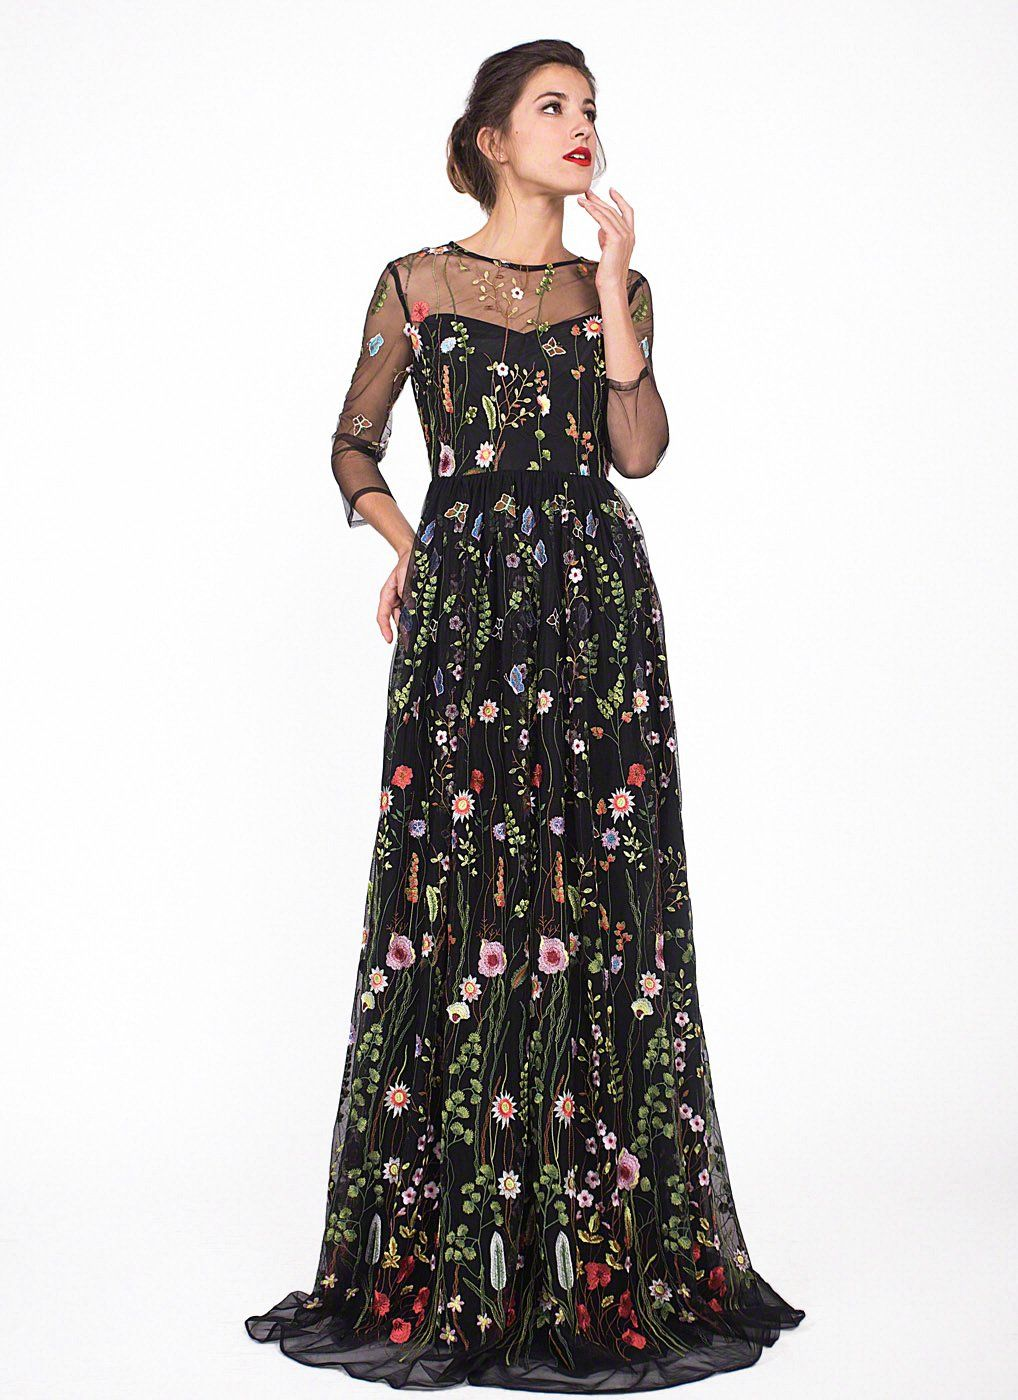 aae90688bc4d White Tulle Colorful Floral Embroidery Whimsical Maxi Evening Dress with  Sheer 3 4 Sleeves